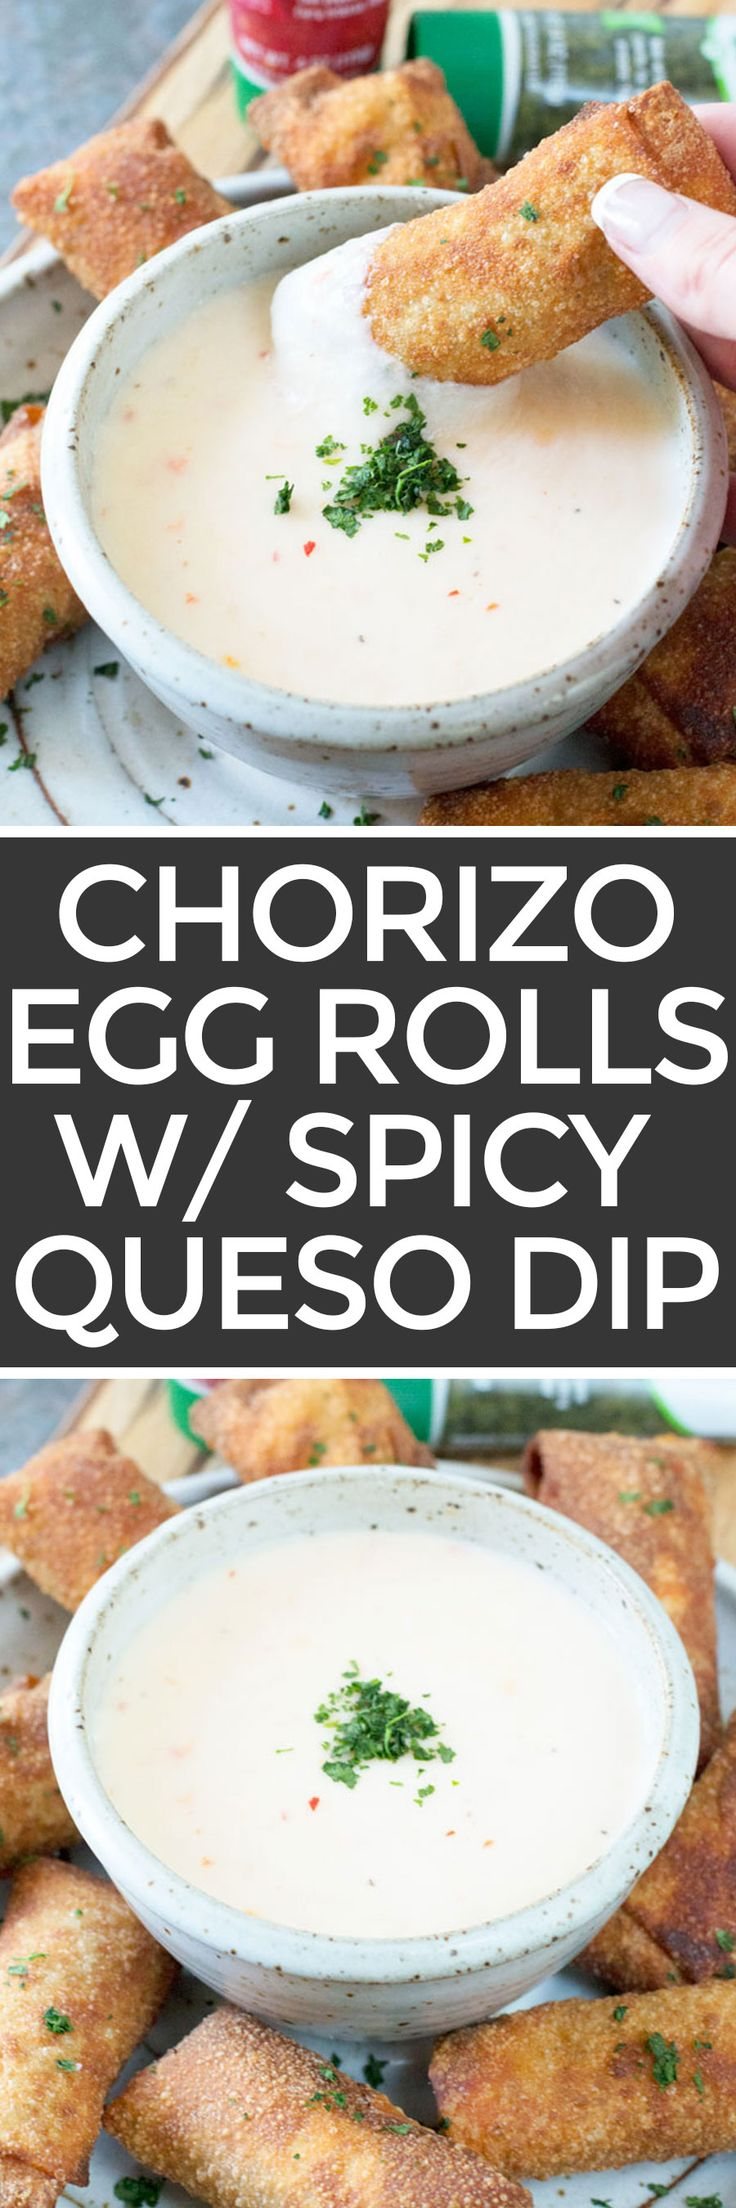 Chorizo Egg Rolls With Spicy Queso Dipping Sauce